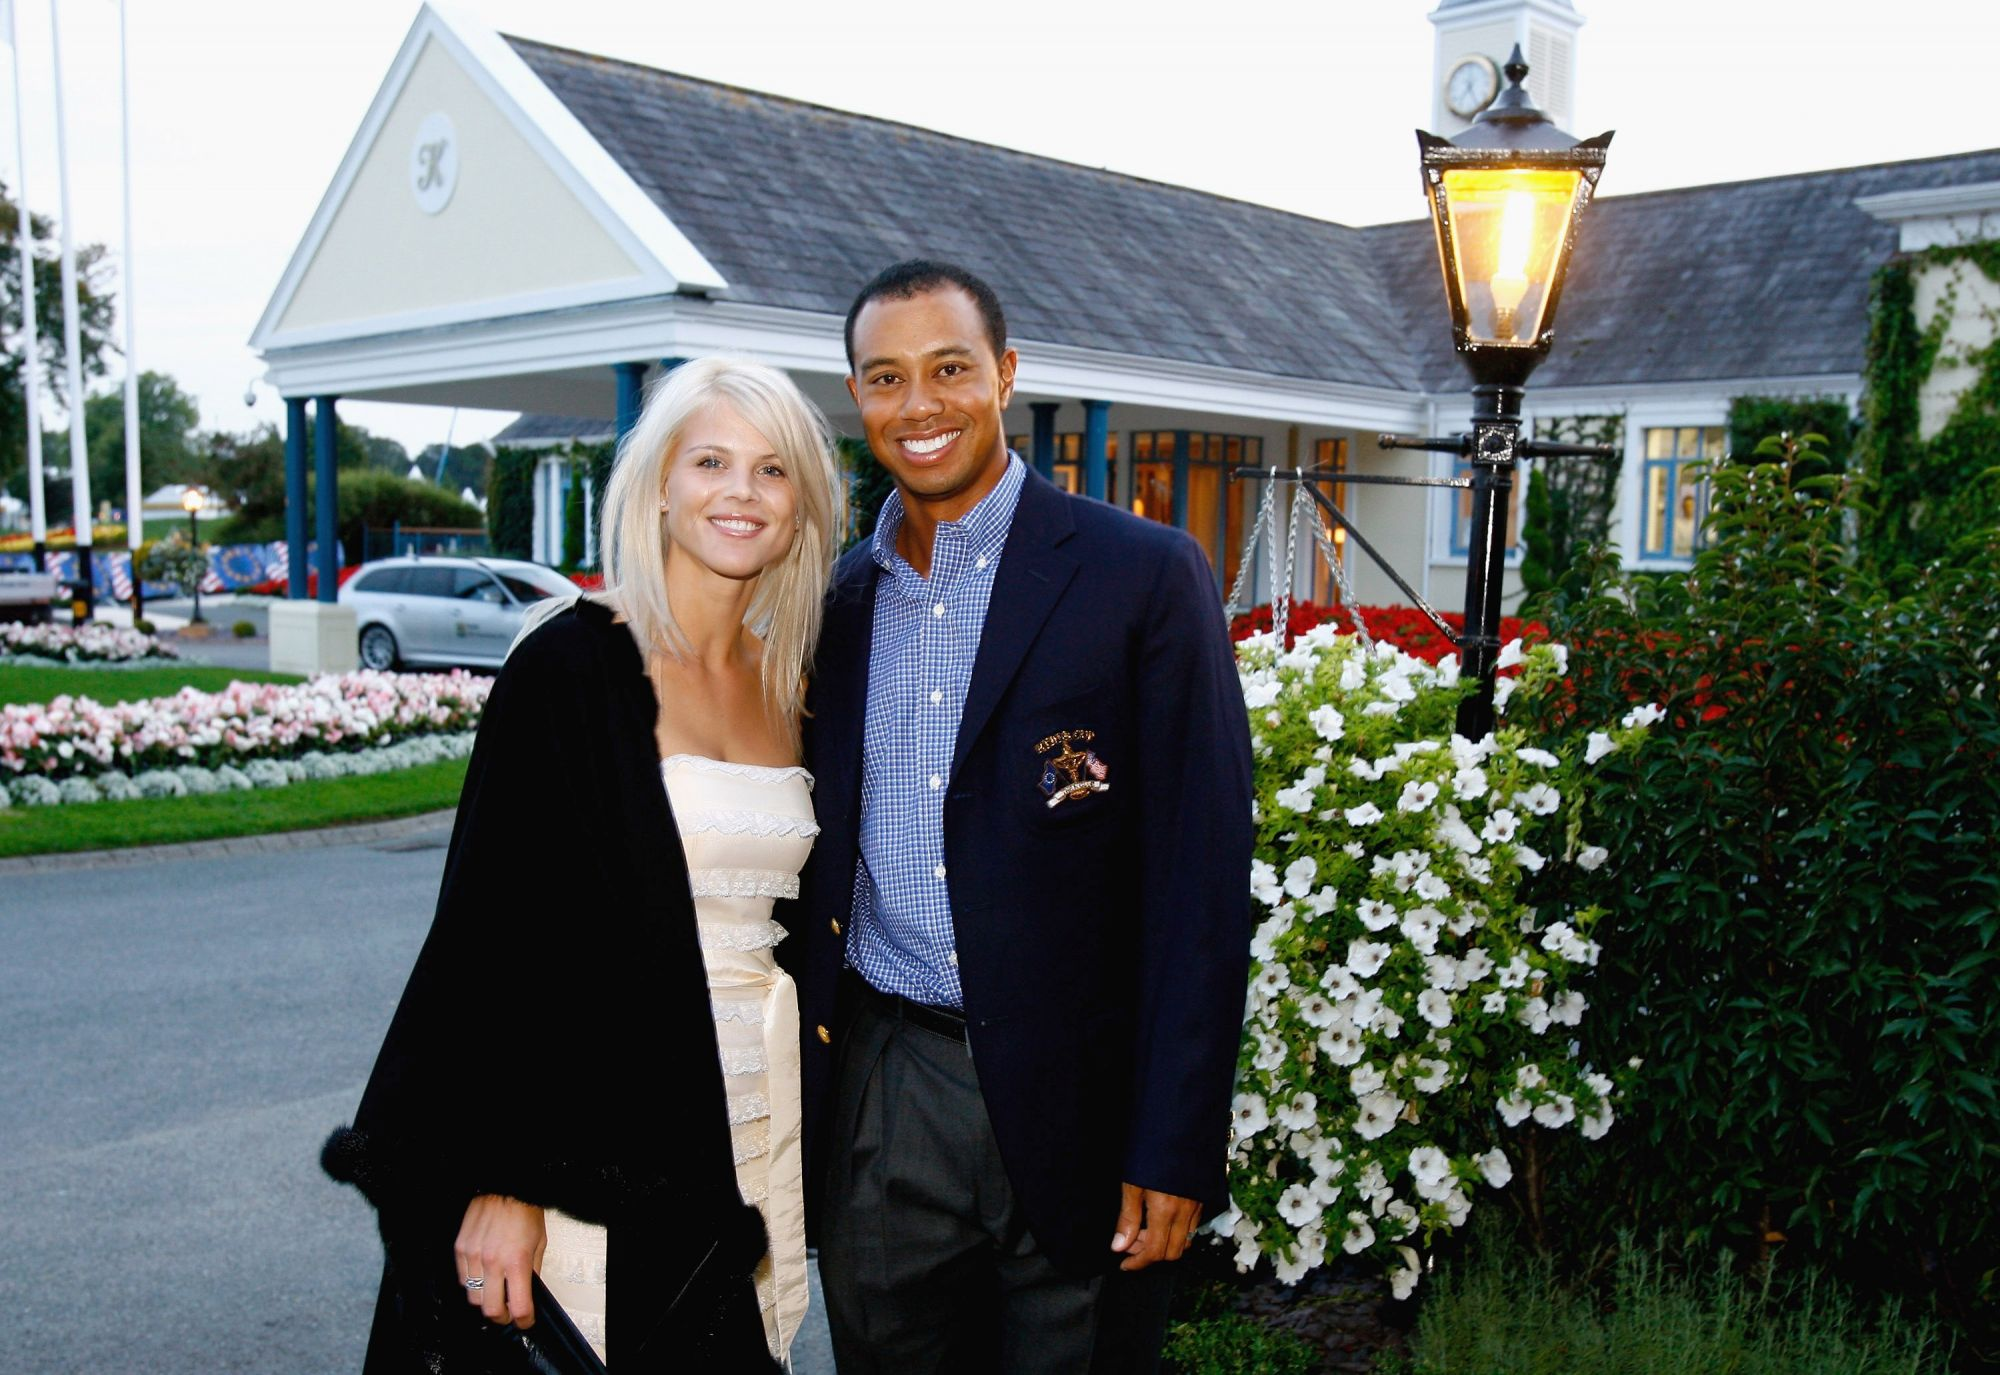 KILDARE, IRELAND - SEPTEMBER 19: Tiger Woods of USA poses with his wife Elin Nordegren at The Welcome Dinner after the first official practice day of the 2006 Ryder Cup at The K Club on September 19, 2006 in Straffan, Co. Kildare, Ireland. (Photo by David Cannon/Getty Images)